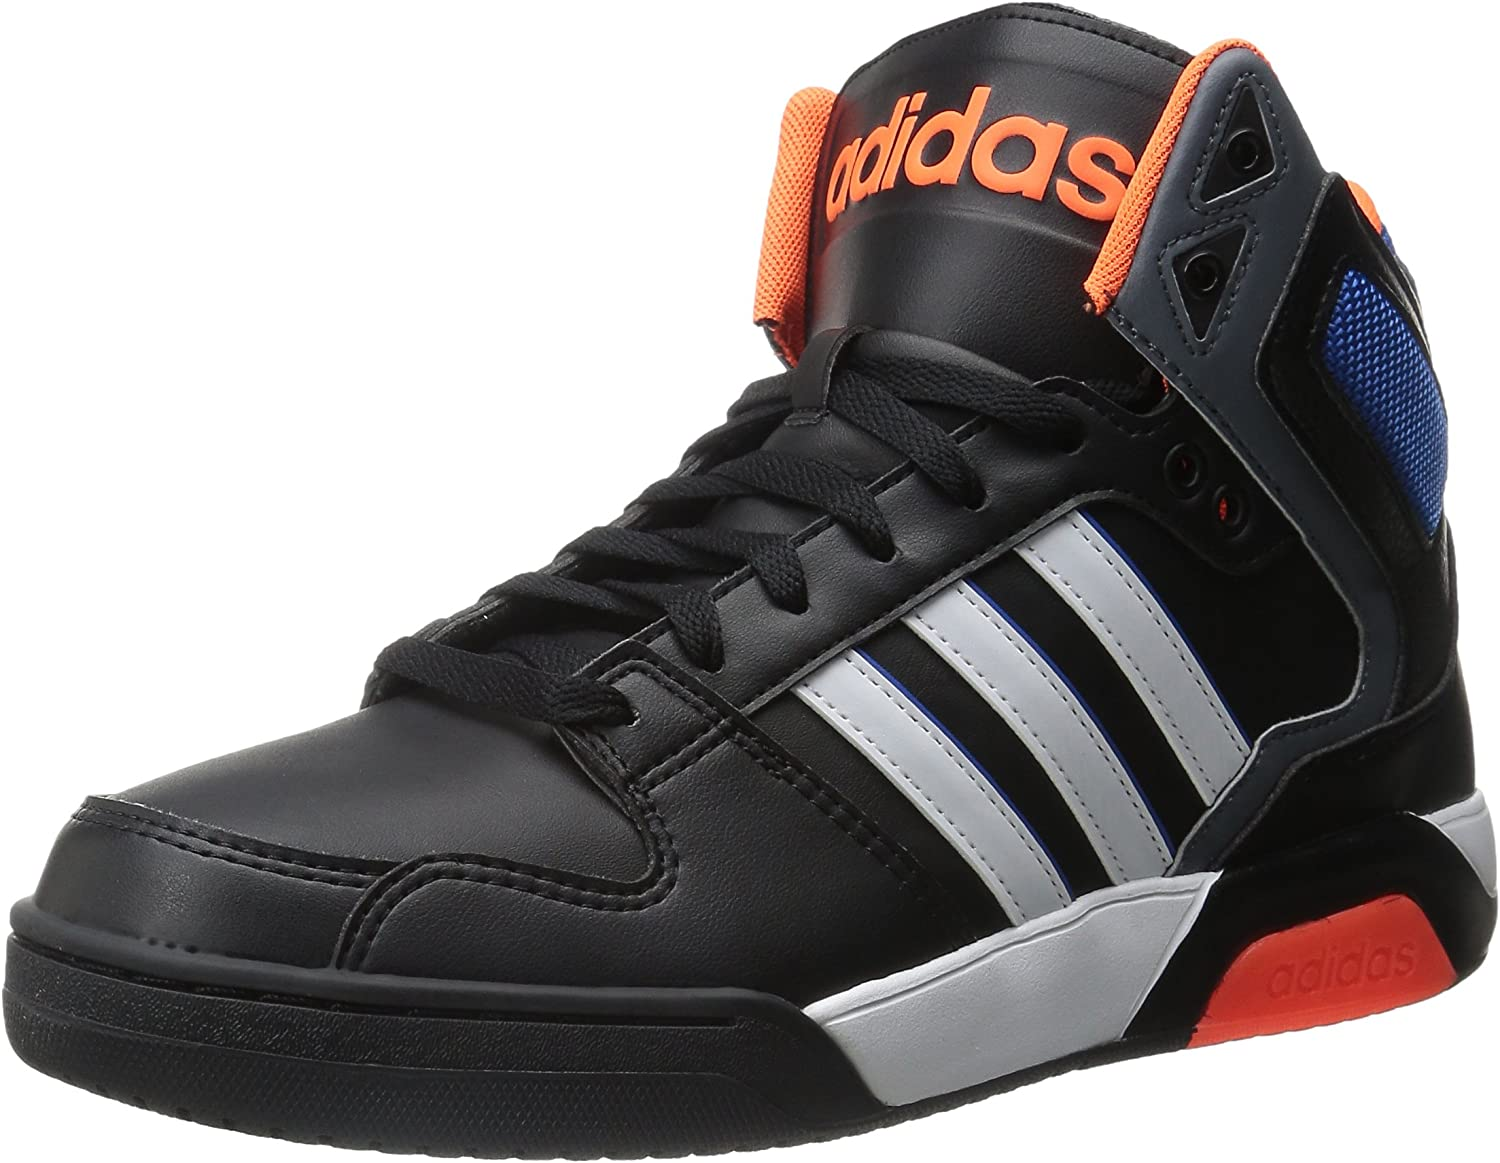 adidas Neo Men's BB9TIS Mid Basketball Shoe BlackWhite